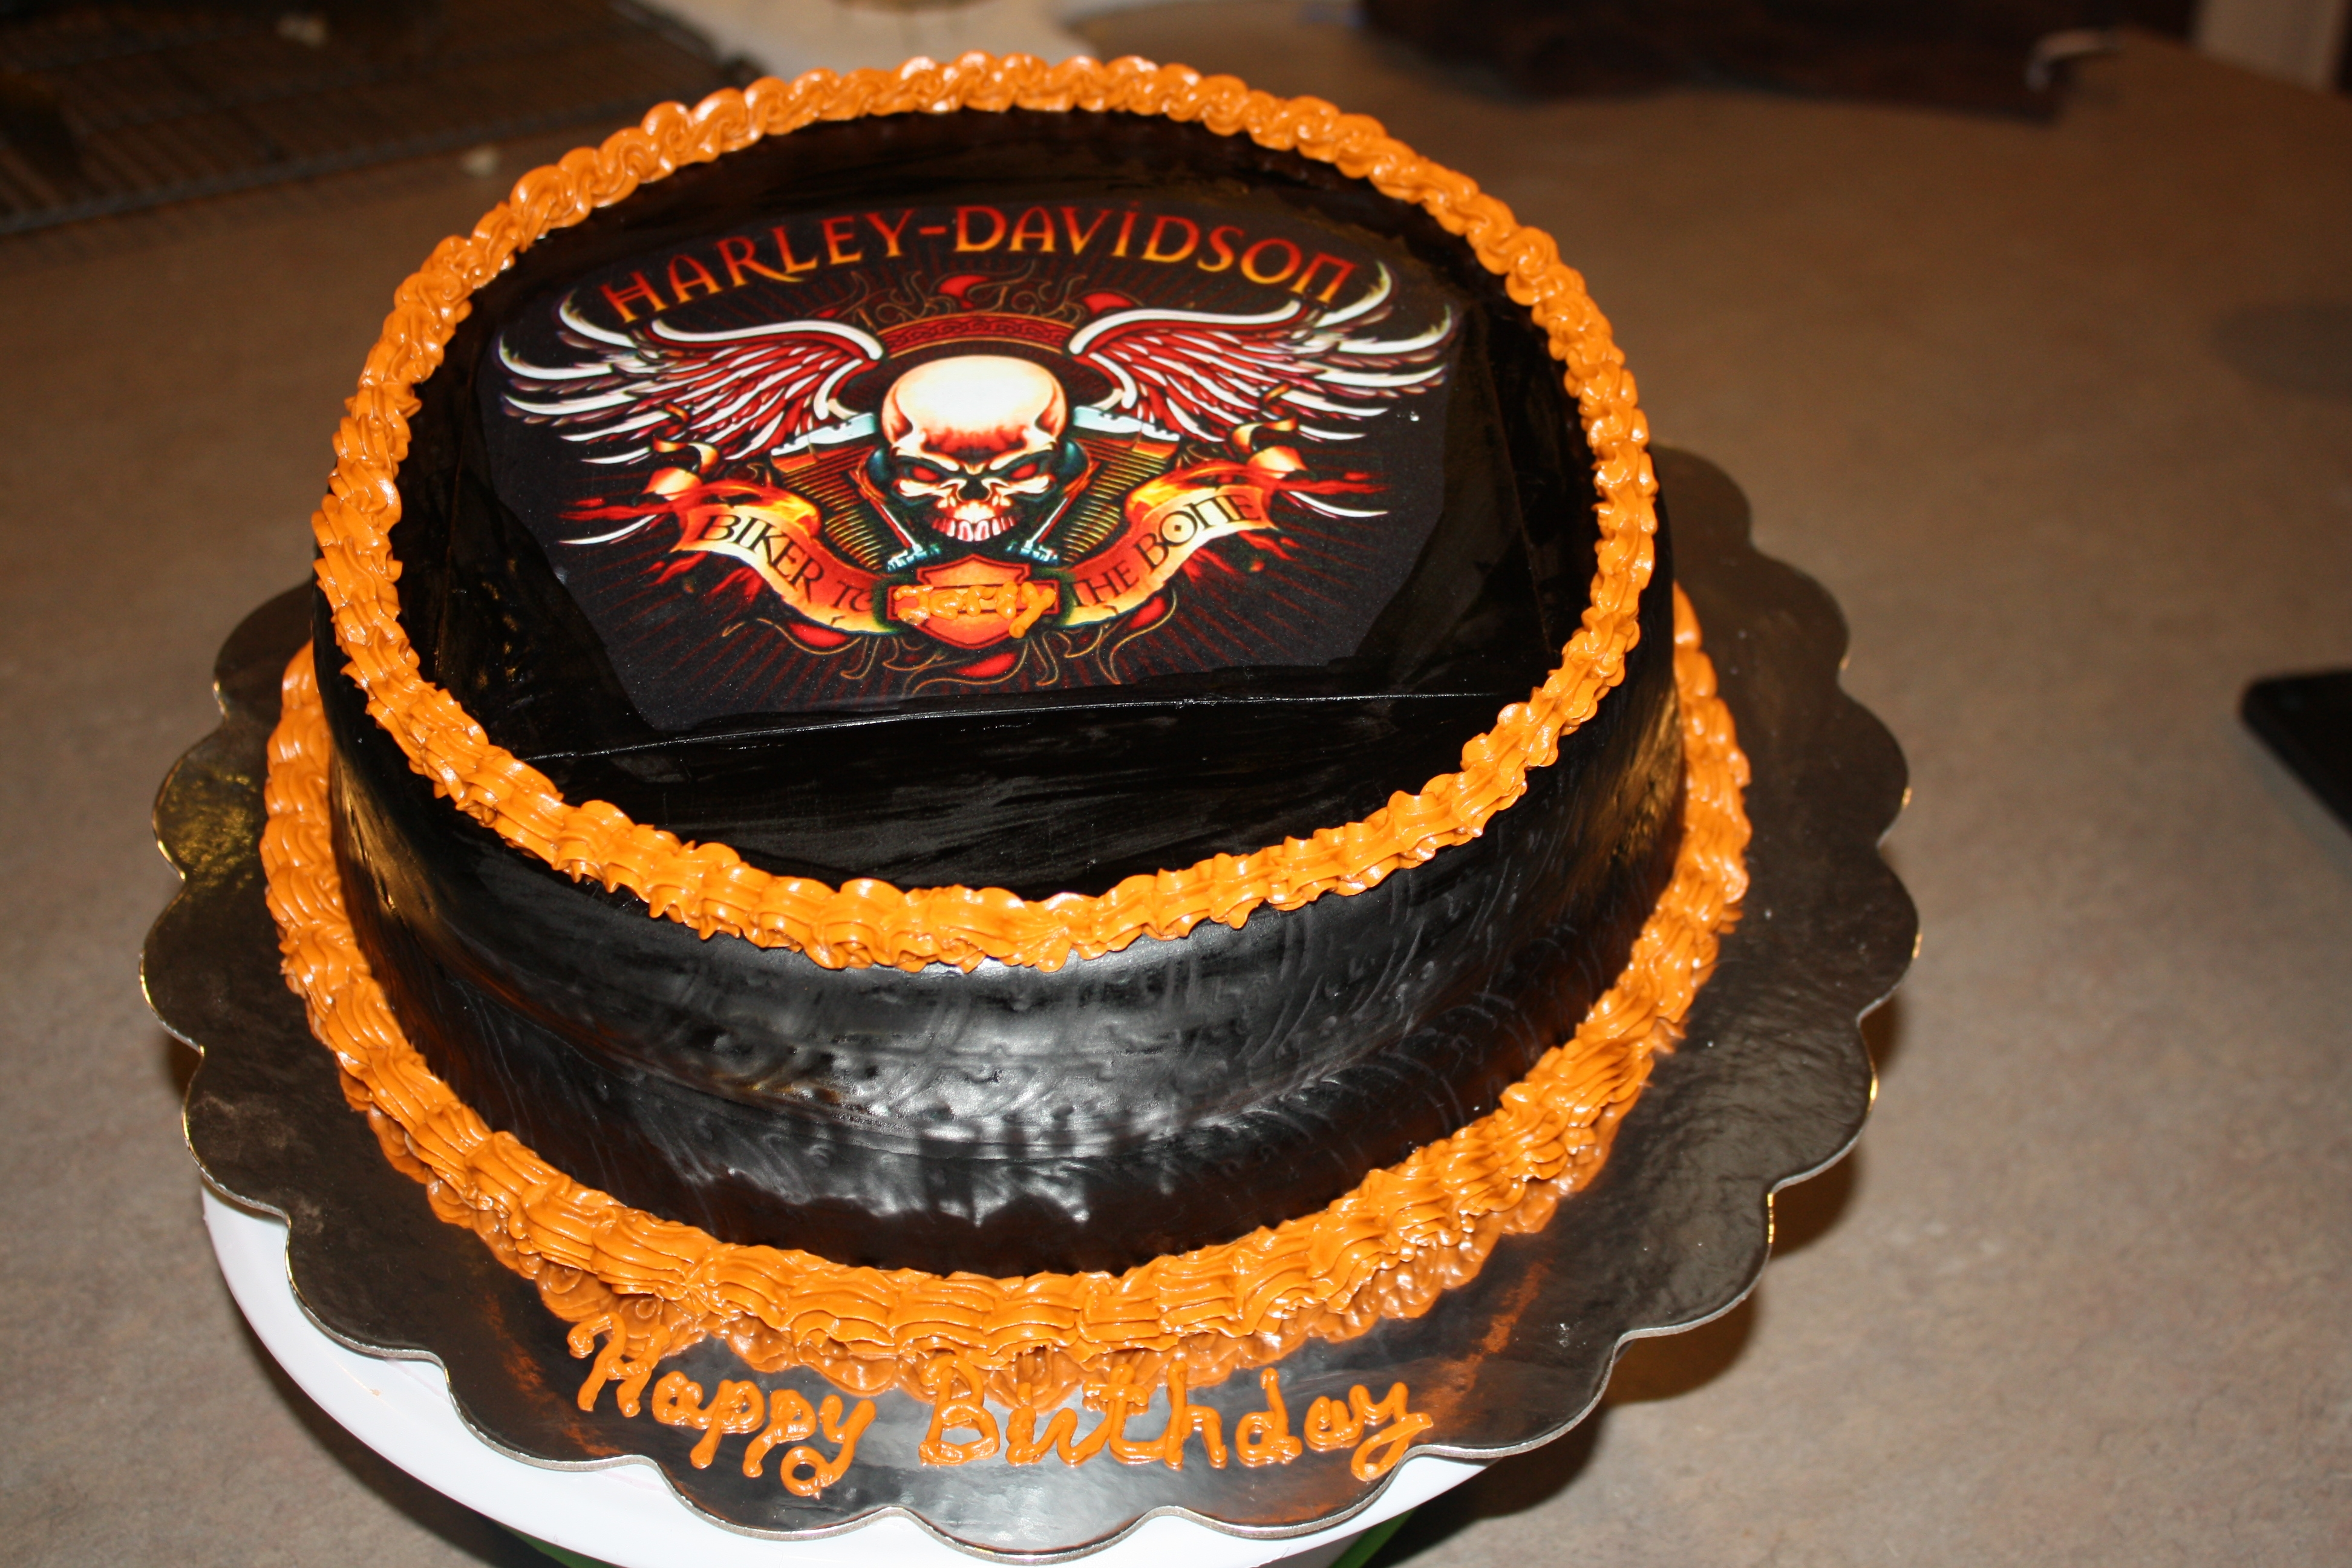 Birthday Cake Images For My Husband : Harley Davidson Birthday Cake For My Husband - CakeCentral.com